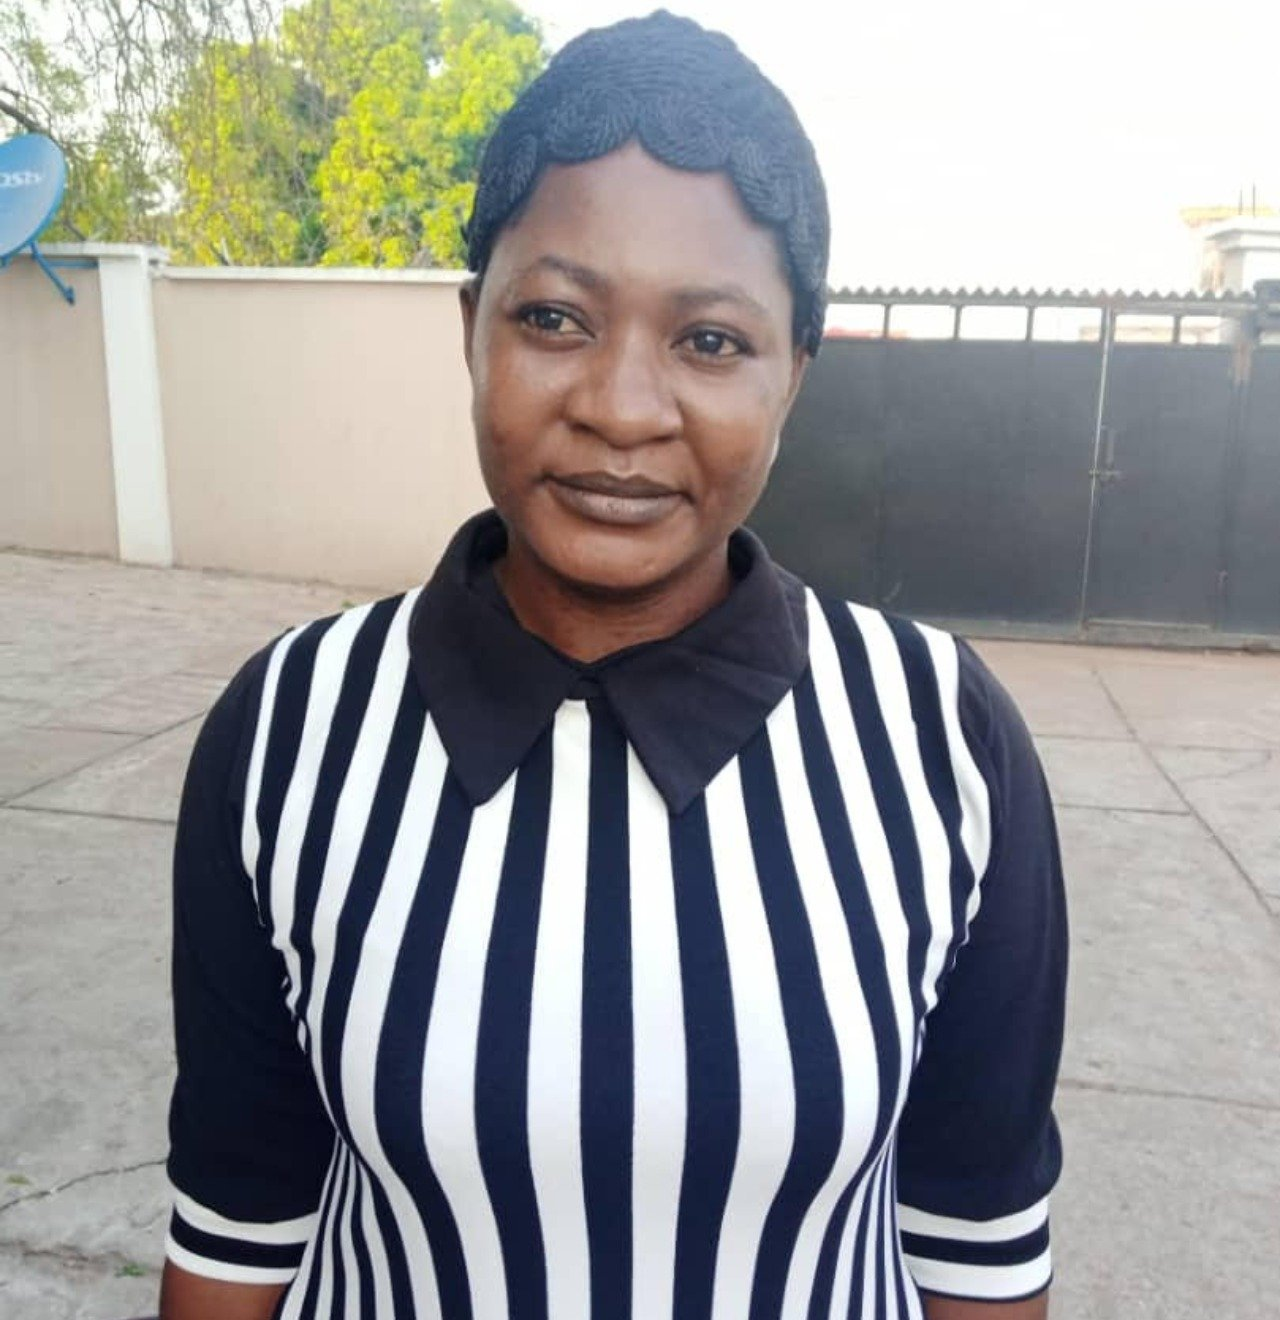 Woman arraigned for Defrauding EFCC, Customs Job Seekers